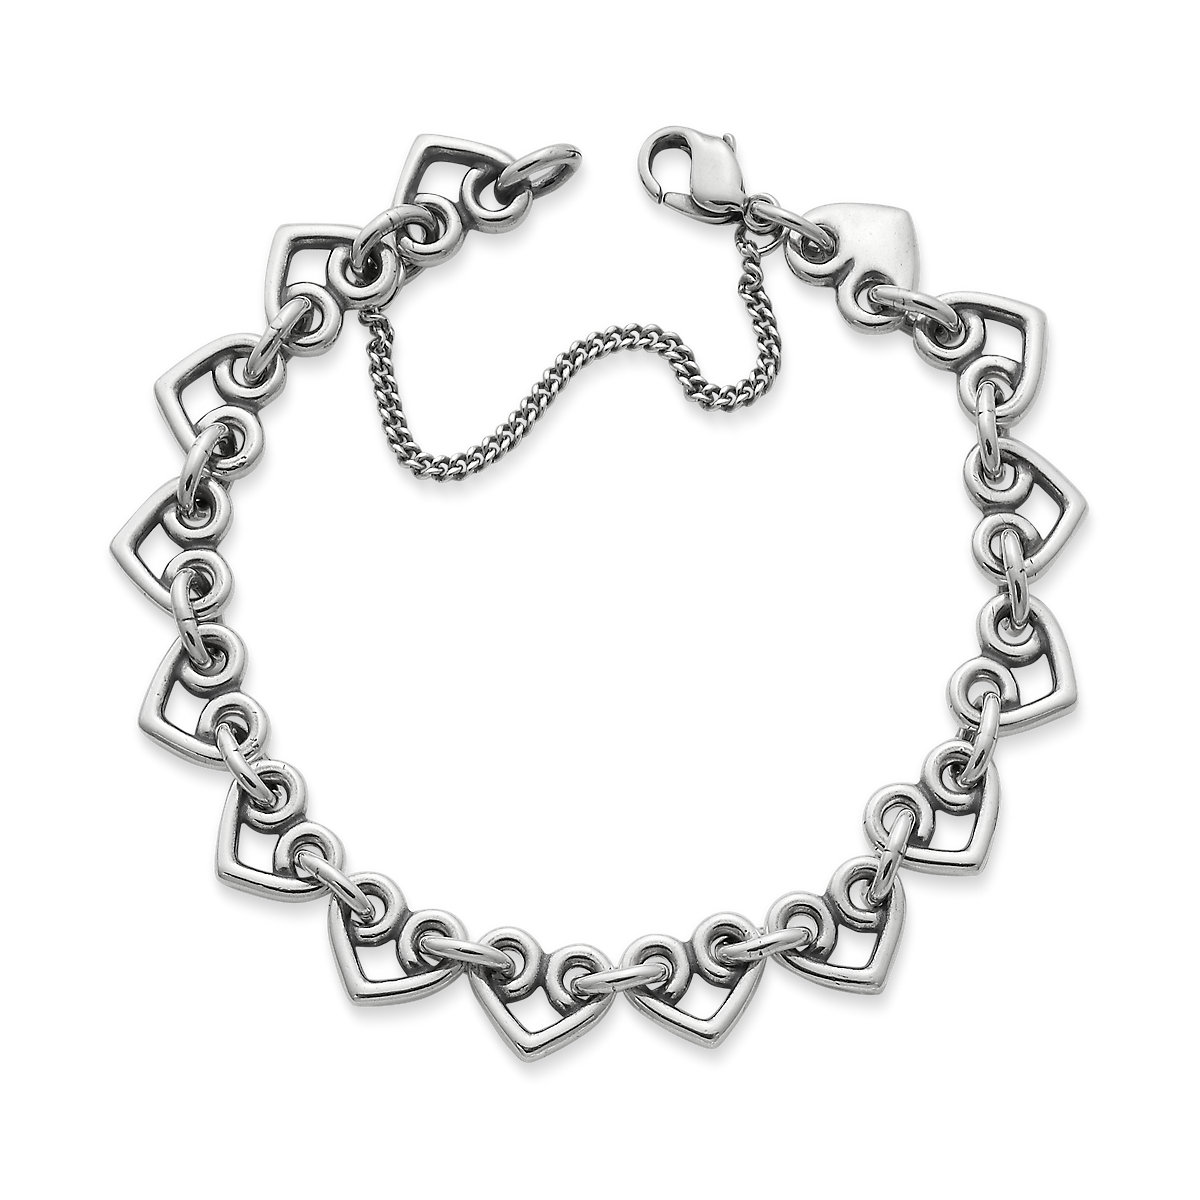 Bangle, Cuff, & Charm Bracelets - James Avery